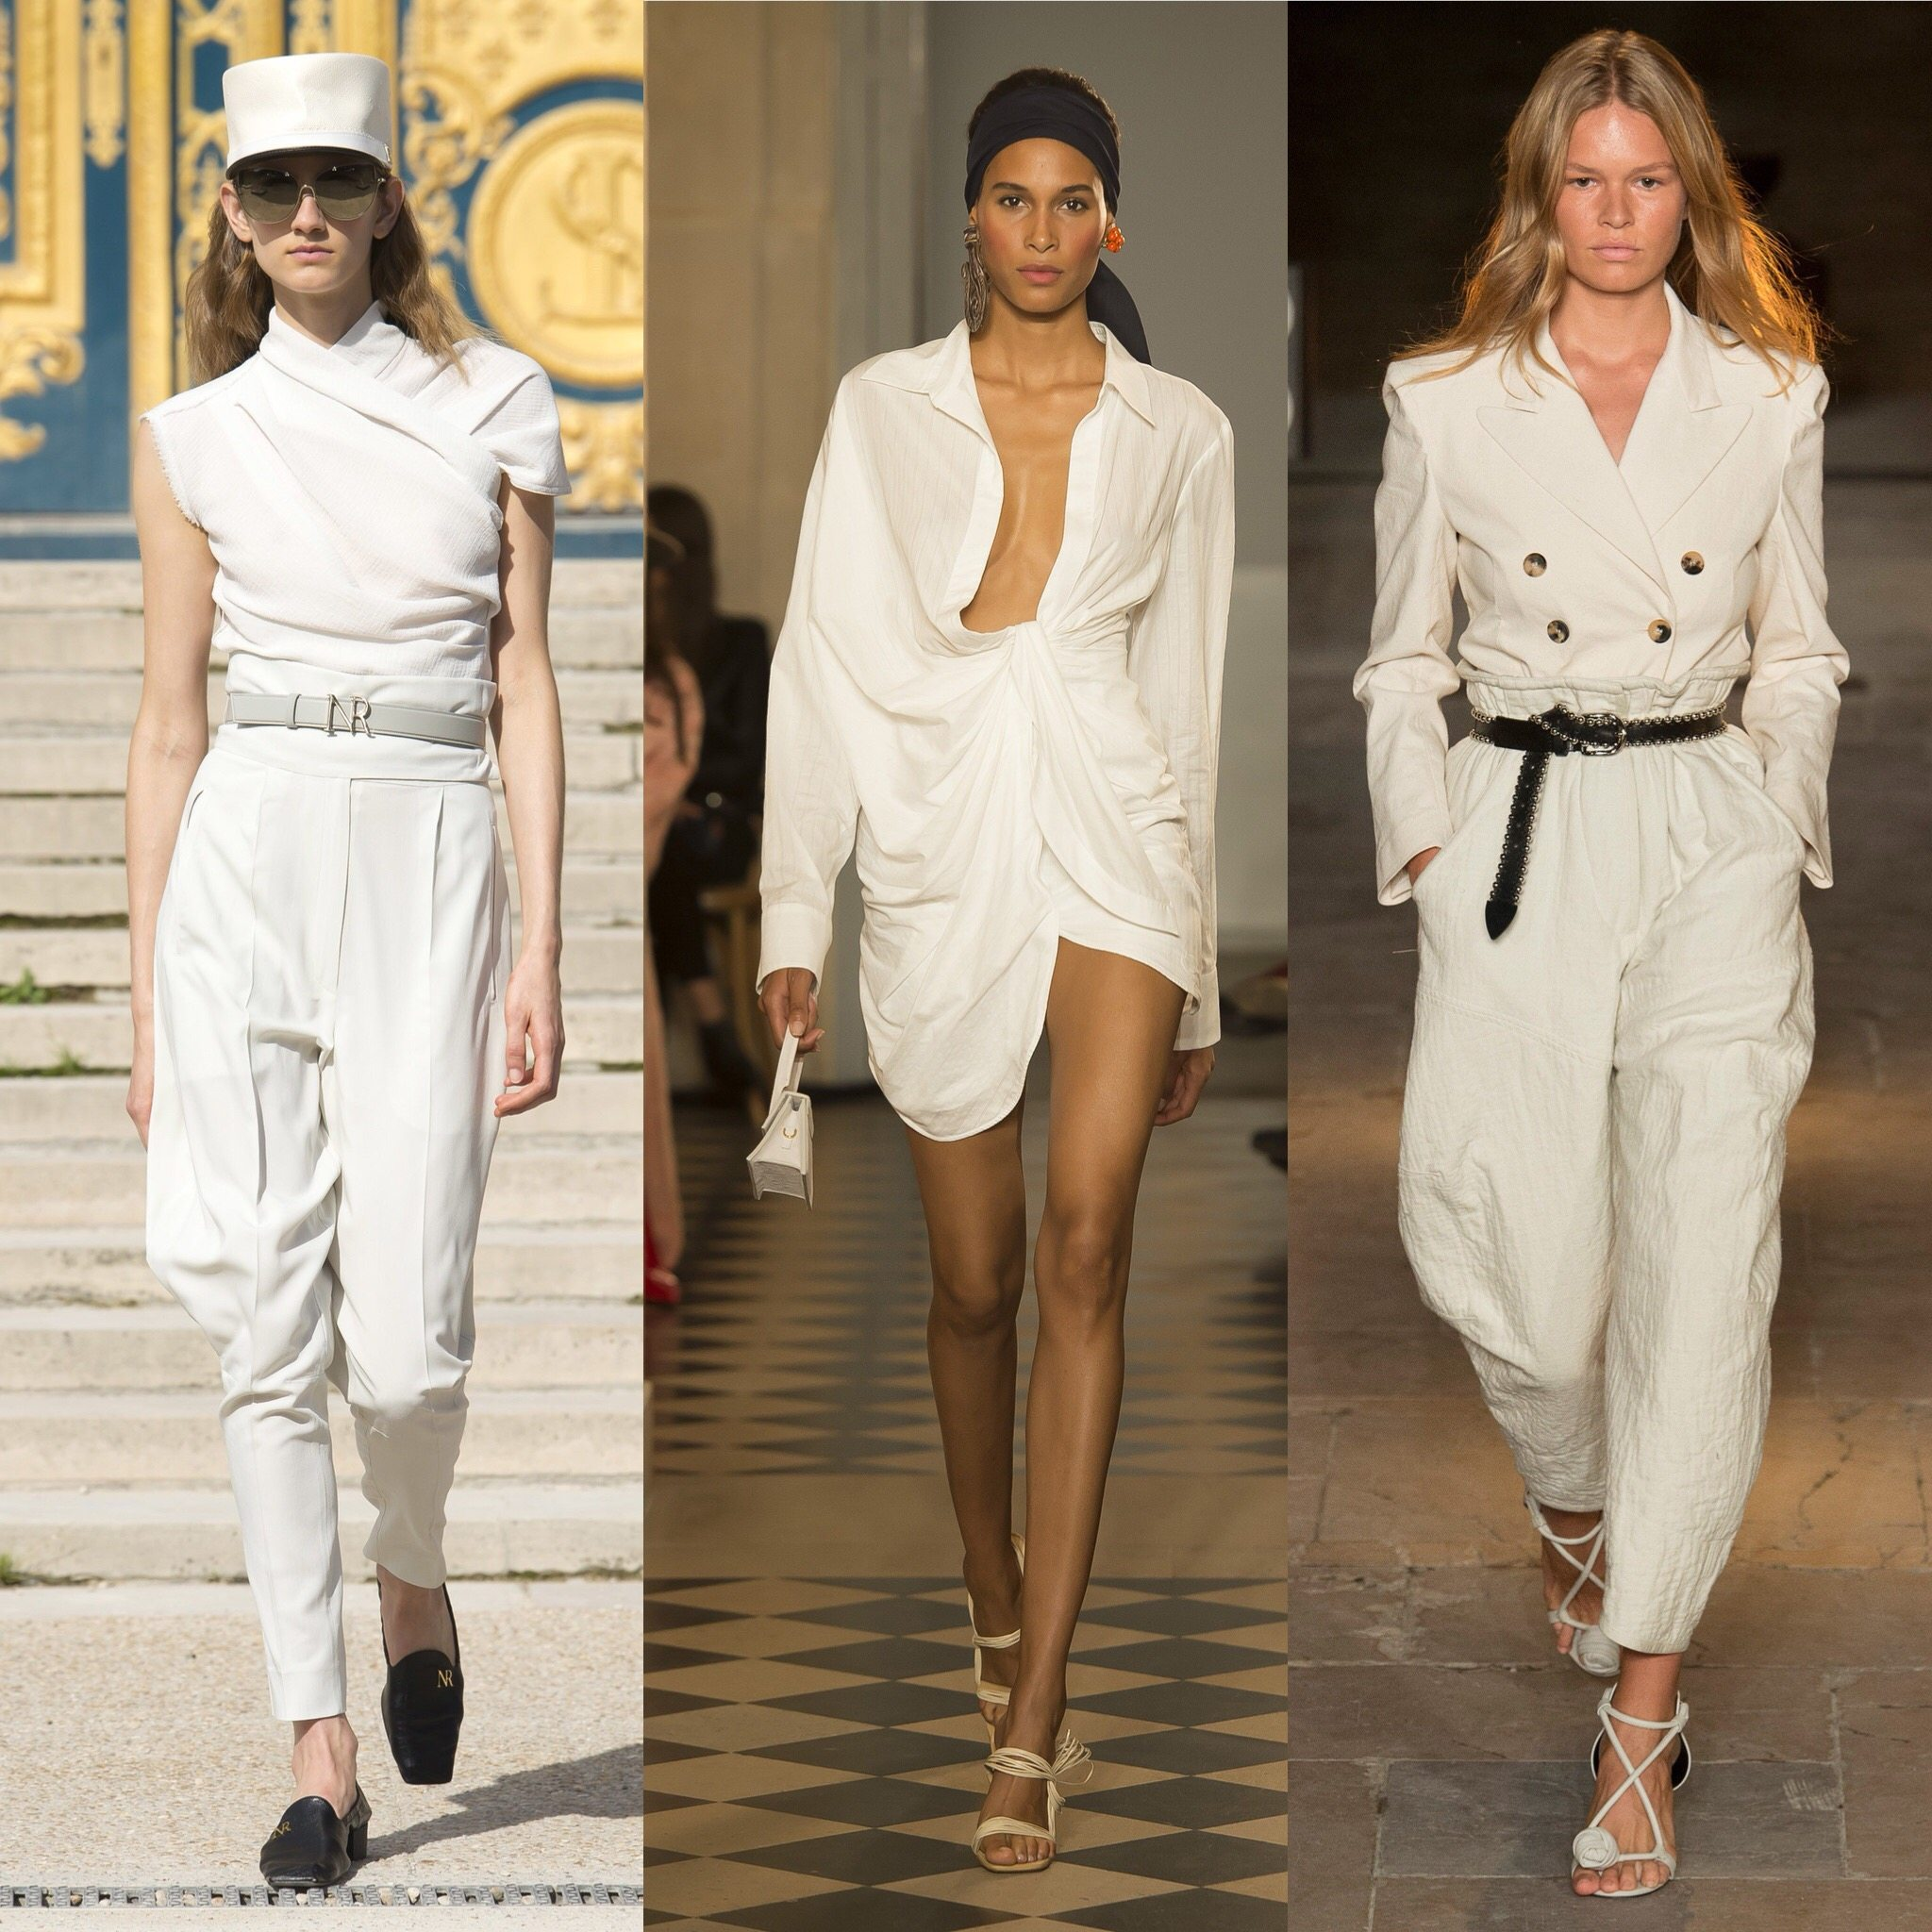 Spring 2018 Trends: Fashion Week coverage - White Monochrome - Nina Ricci - Jacquemus Isabel Marant. More on Houseofcomil.com. Pictures from Vogue